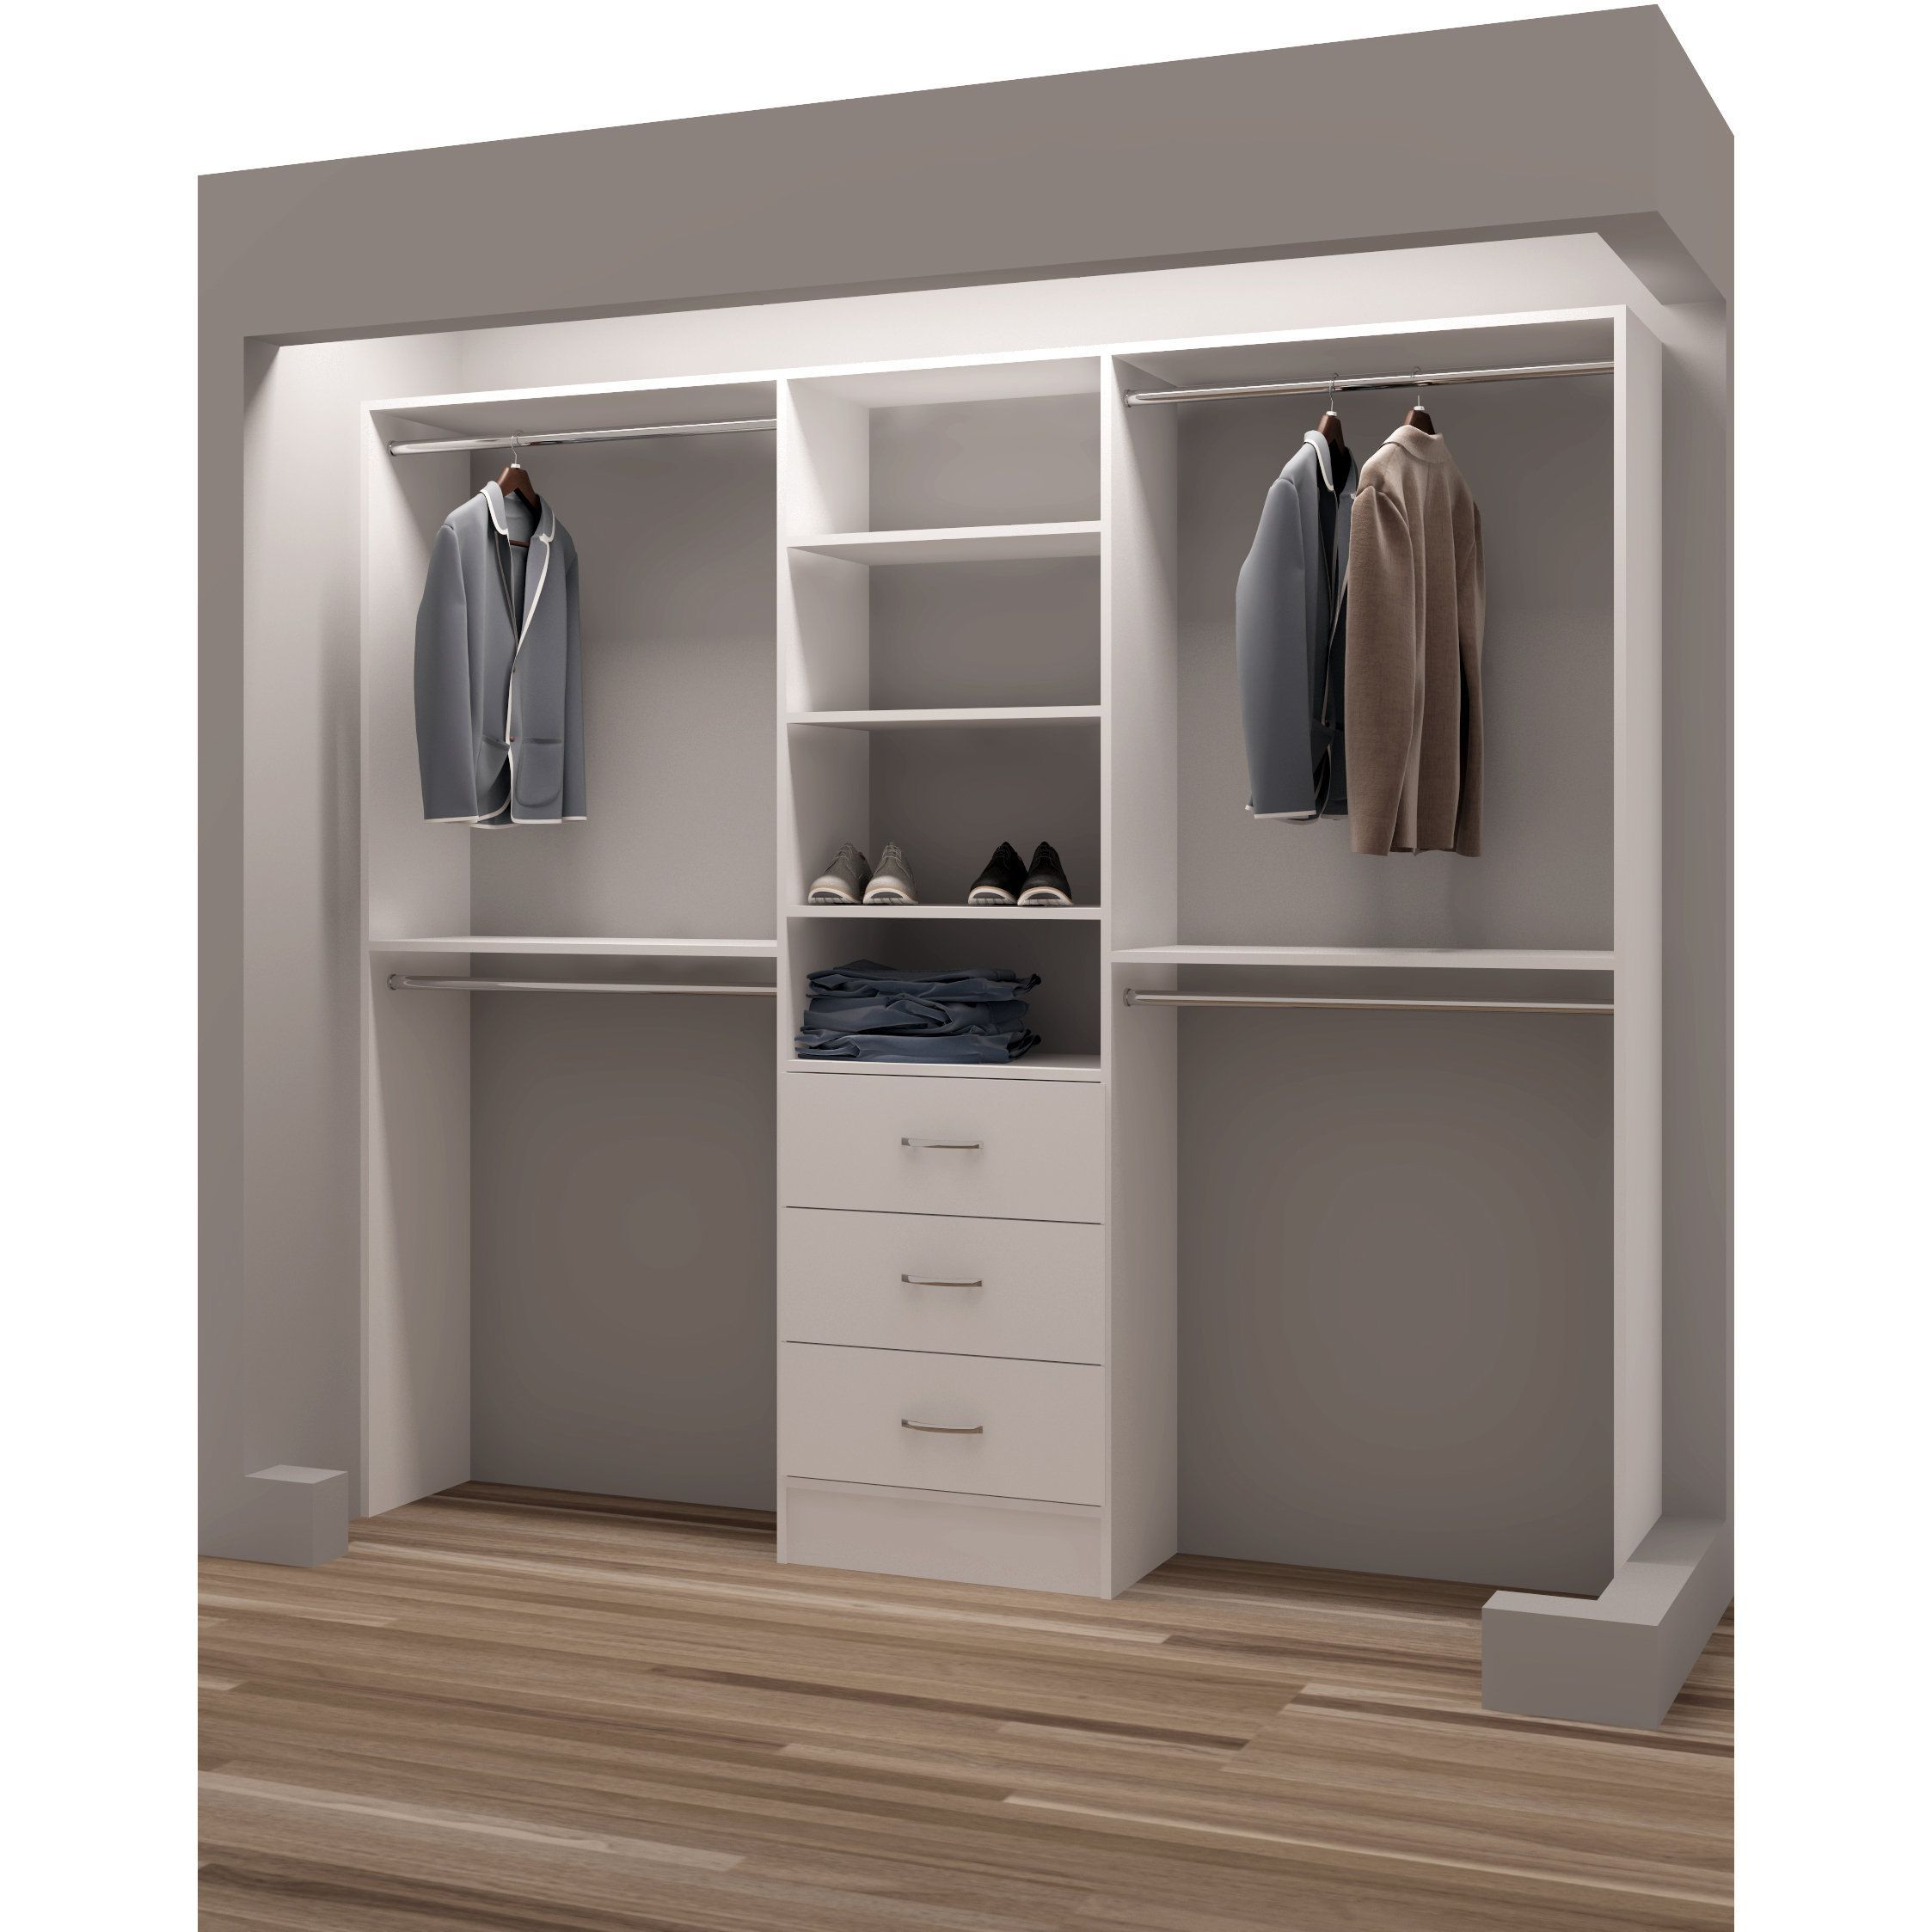 drawers hill for pdx wayfair of organization alcott glenmoor chest storage island closet